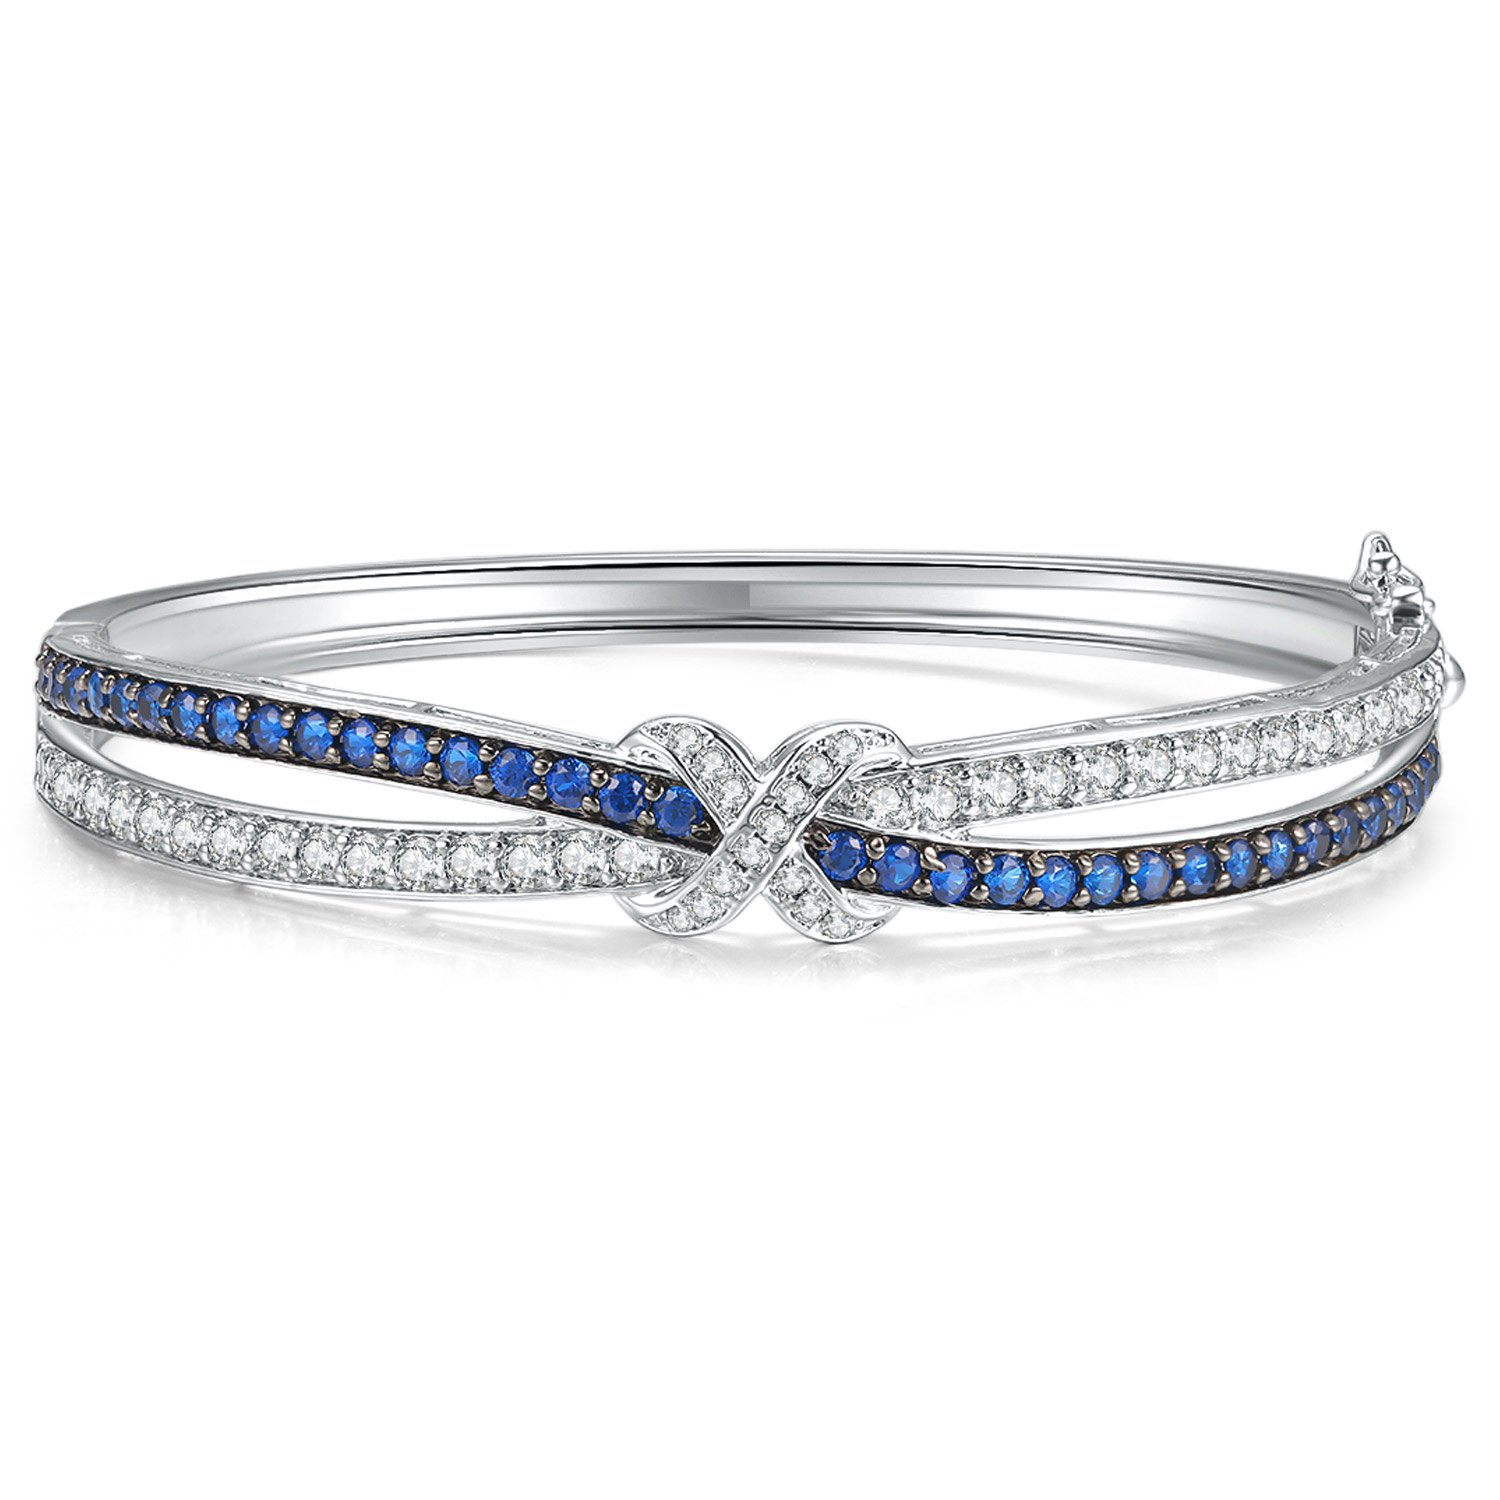 Caperci Love Knot Cubic Zirconia and Created Blue Sapphire Silver Bangle Bracelet for Women, 7.25''